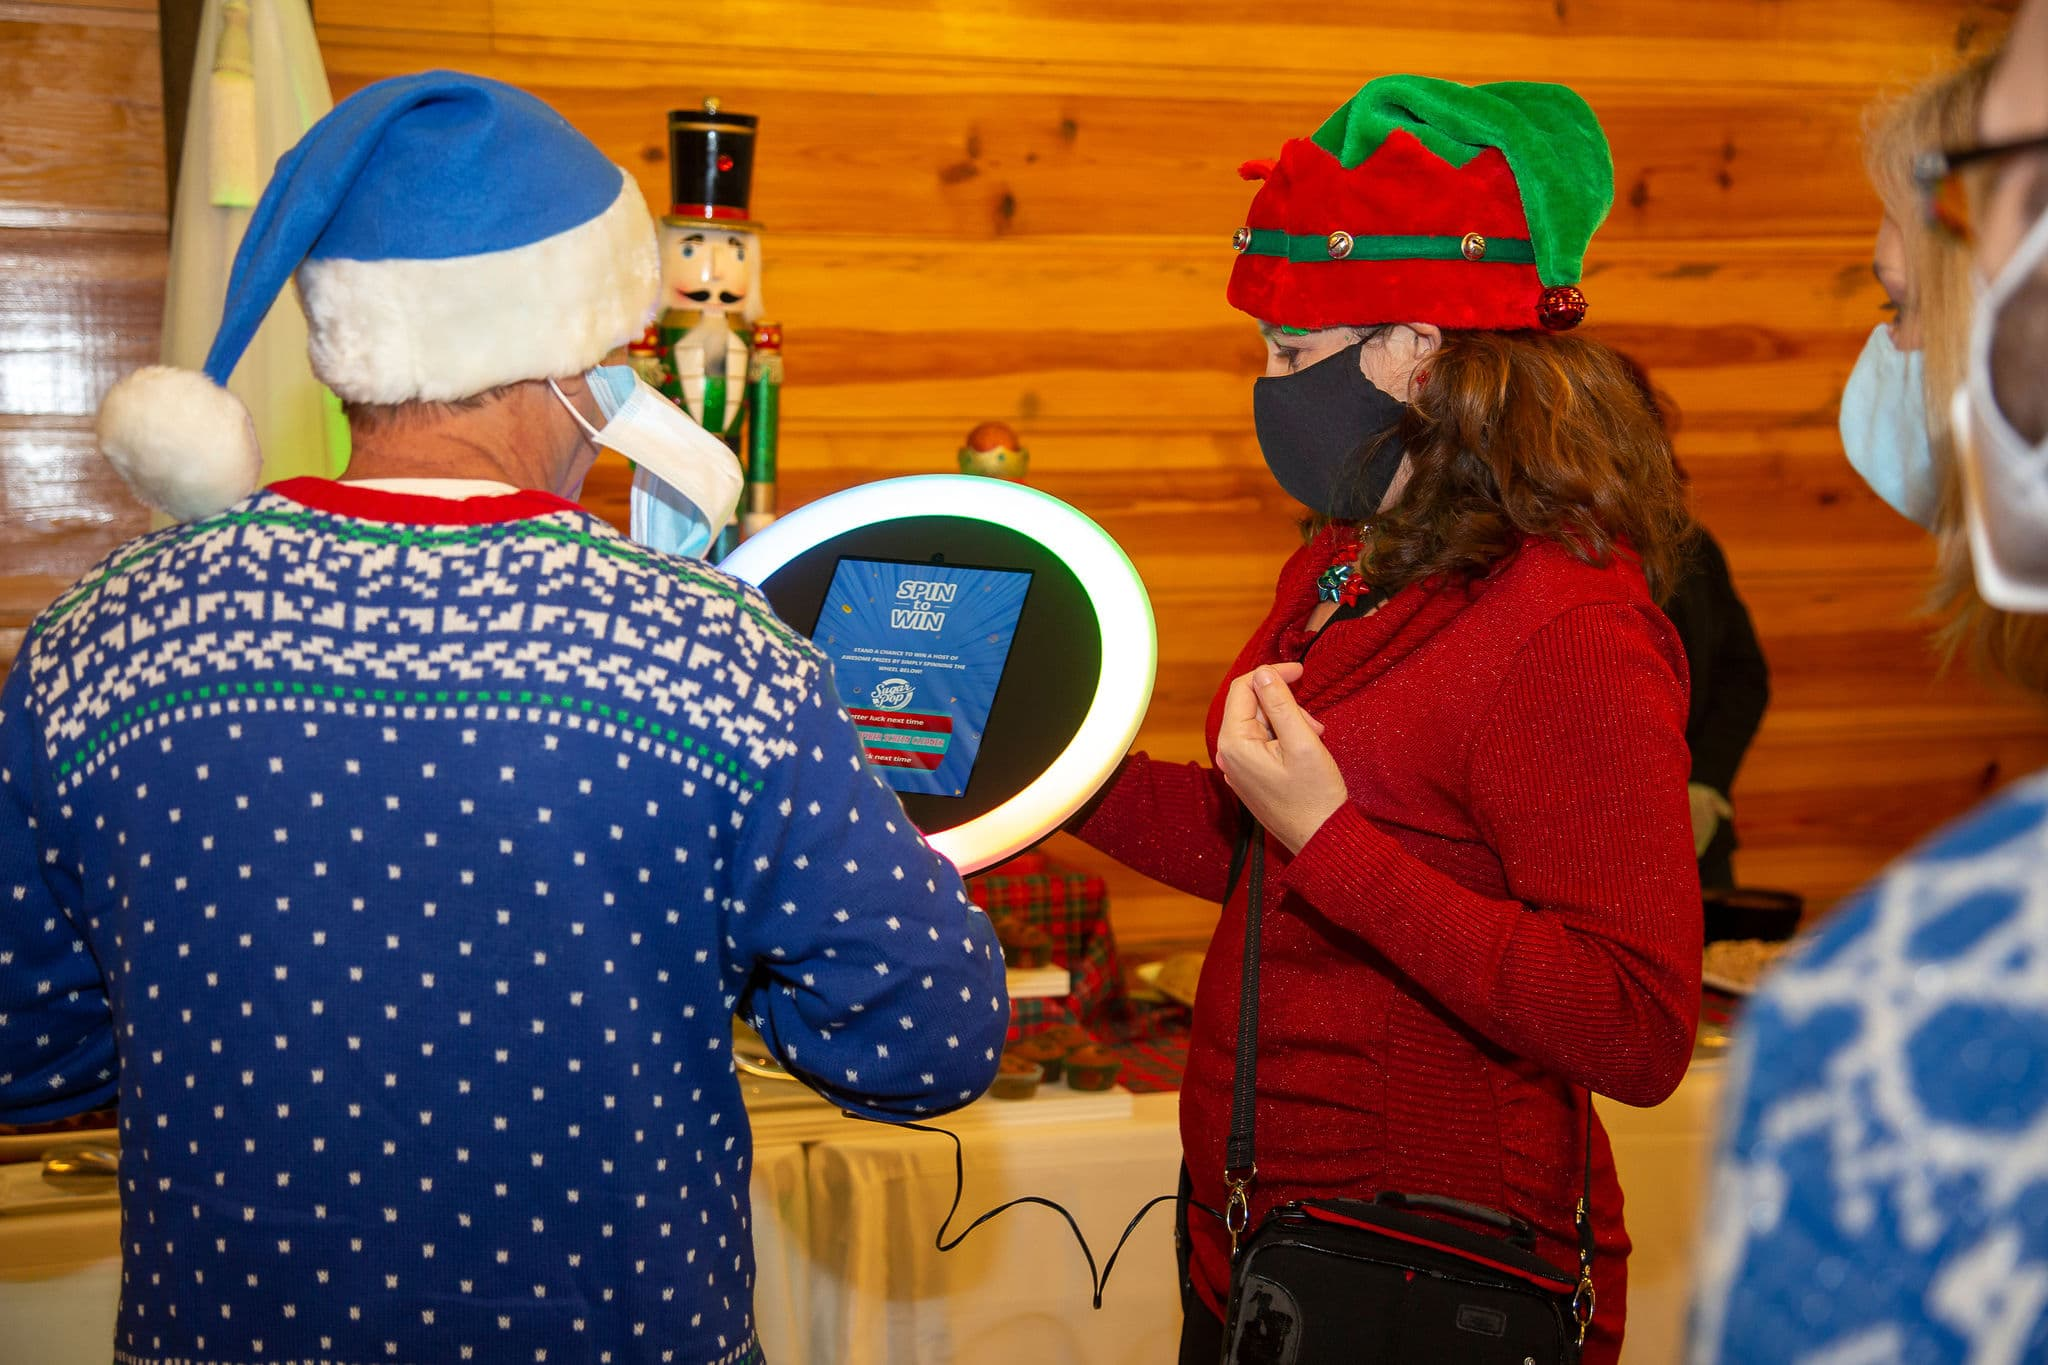 guest in festive blue santa hat and blue holiday sweater using roaming photobooth with the attendant holding the machine while wearing elf hat